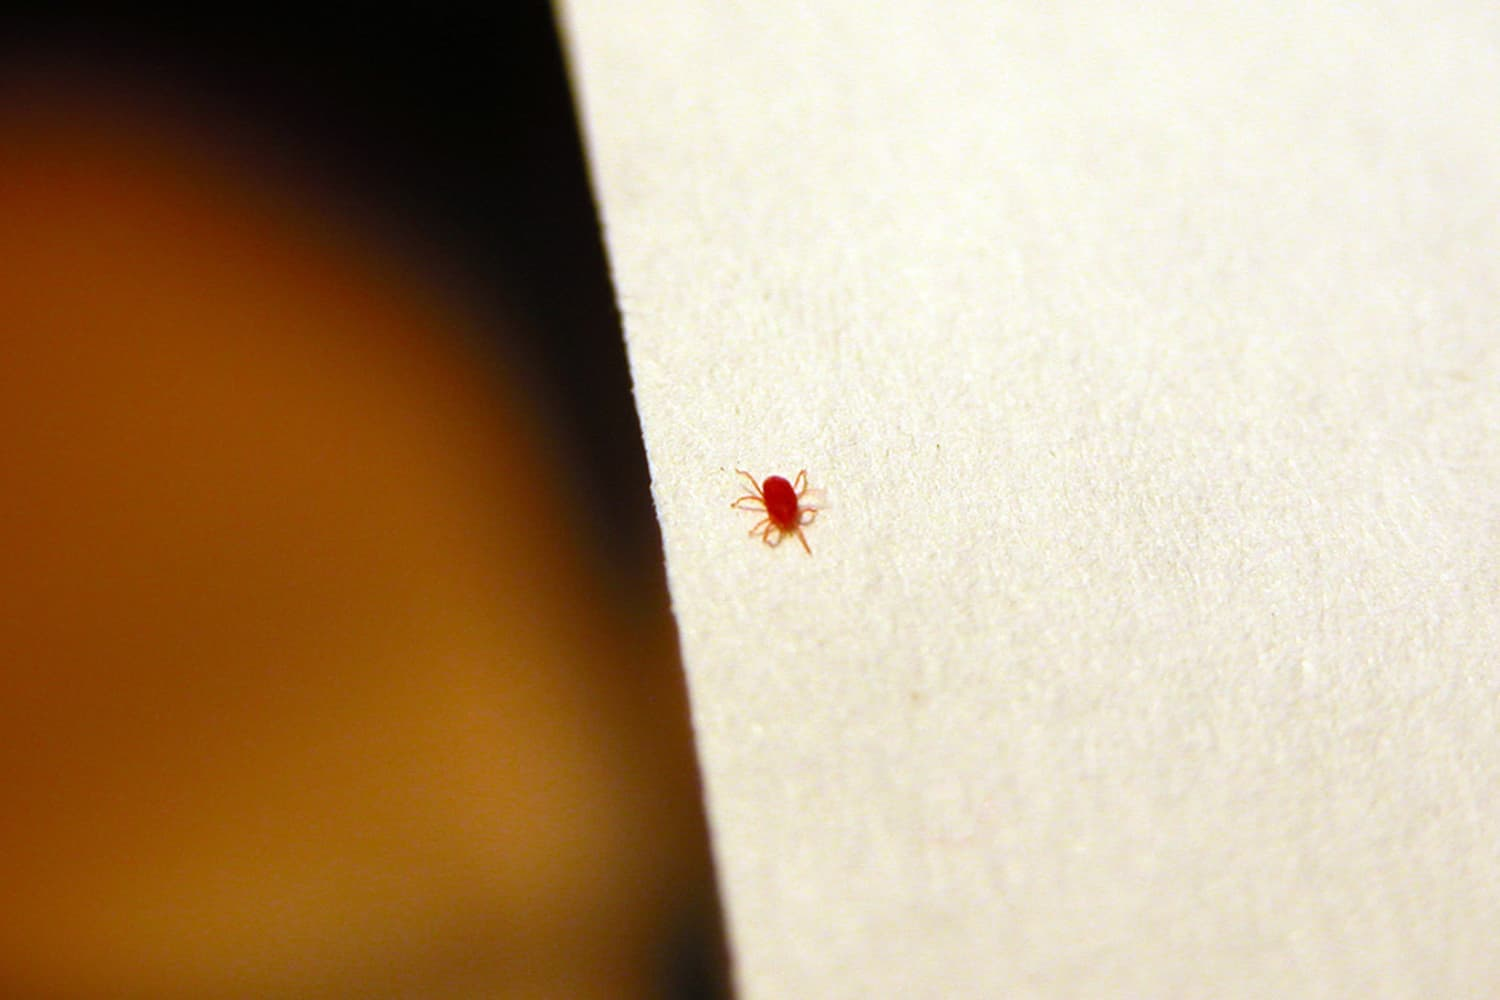 what-are-those-tiny-red-bugs-all-about-clover-mites